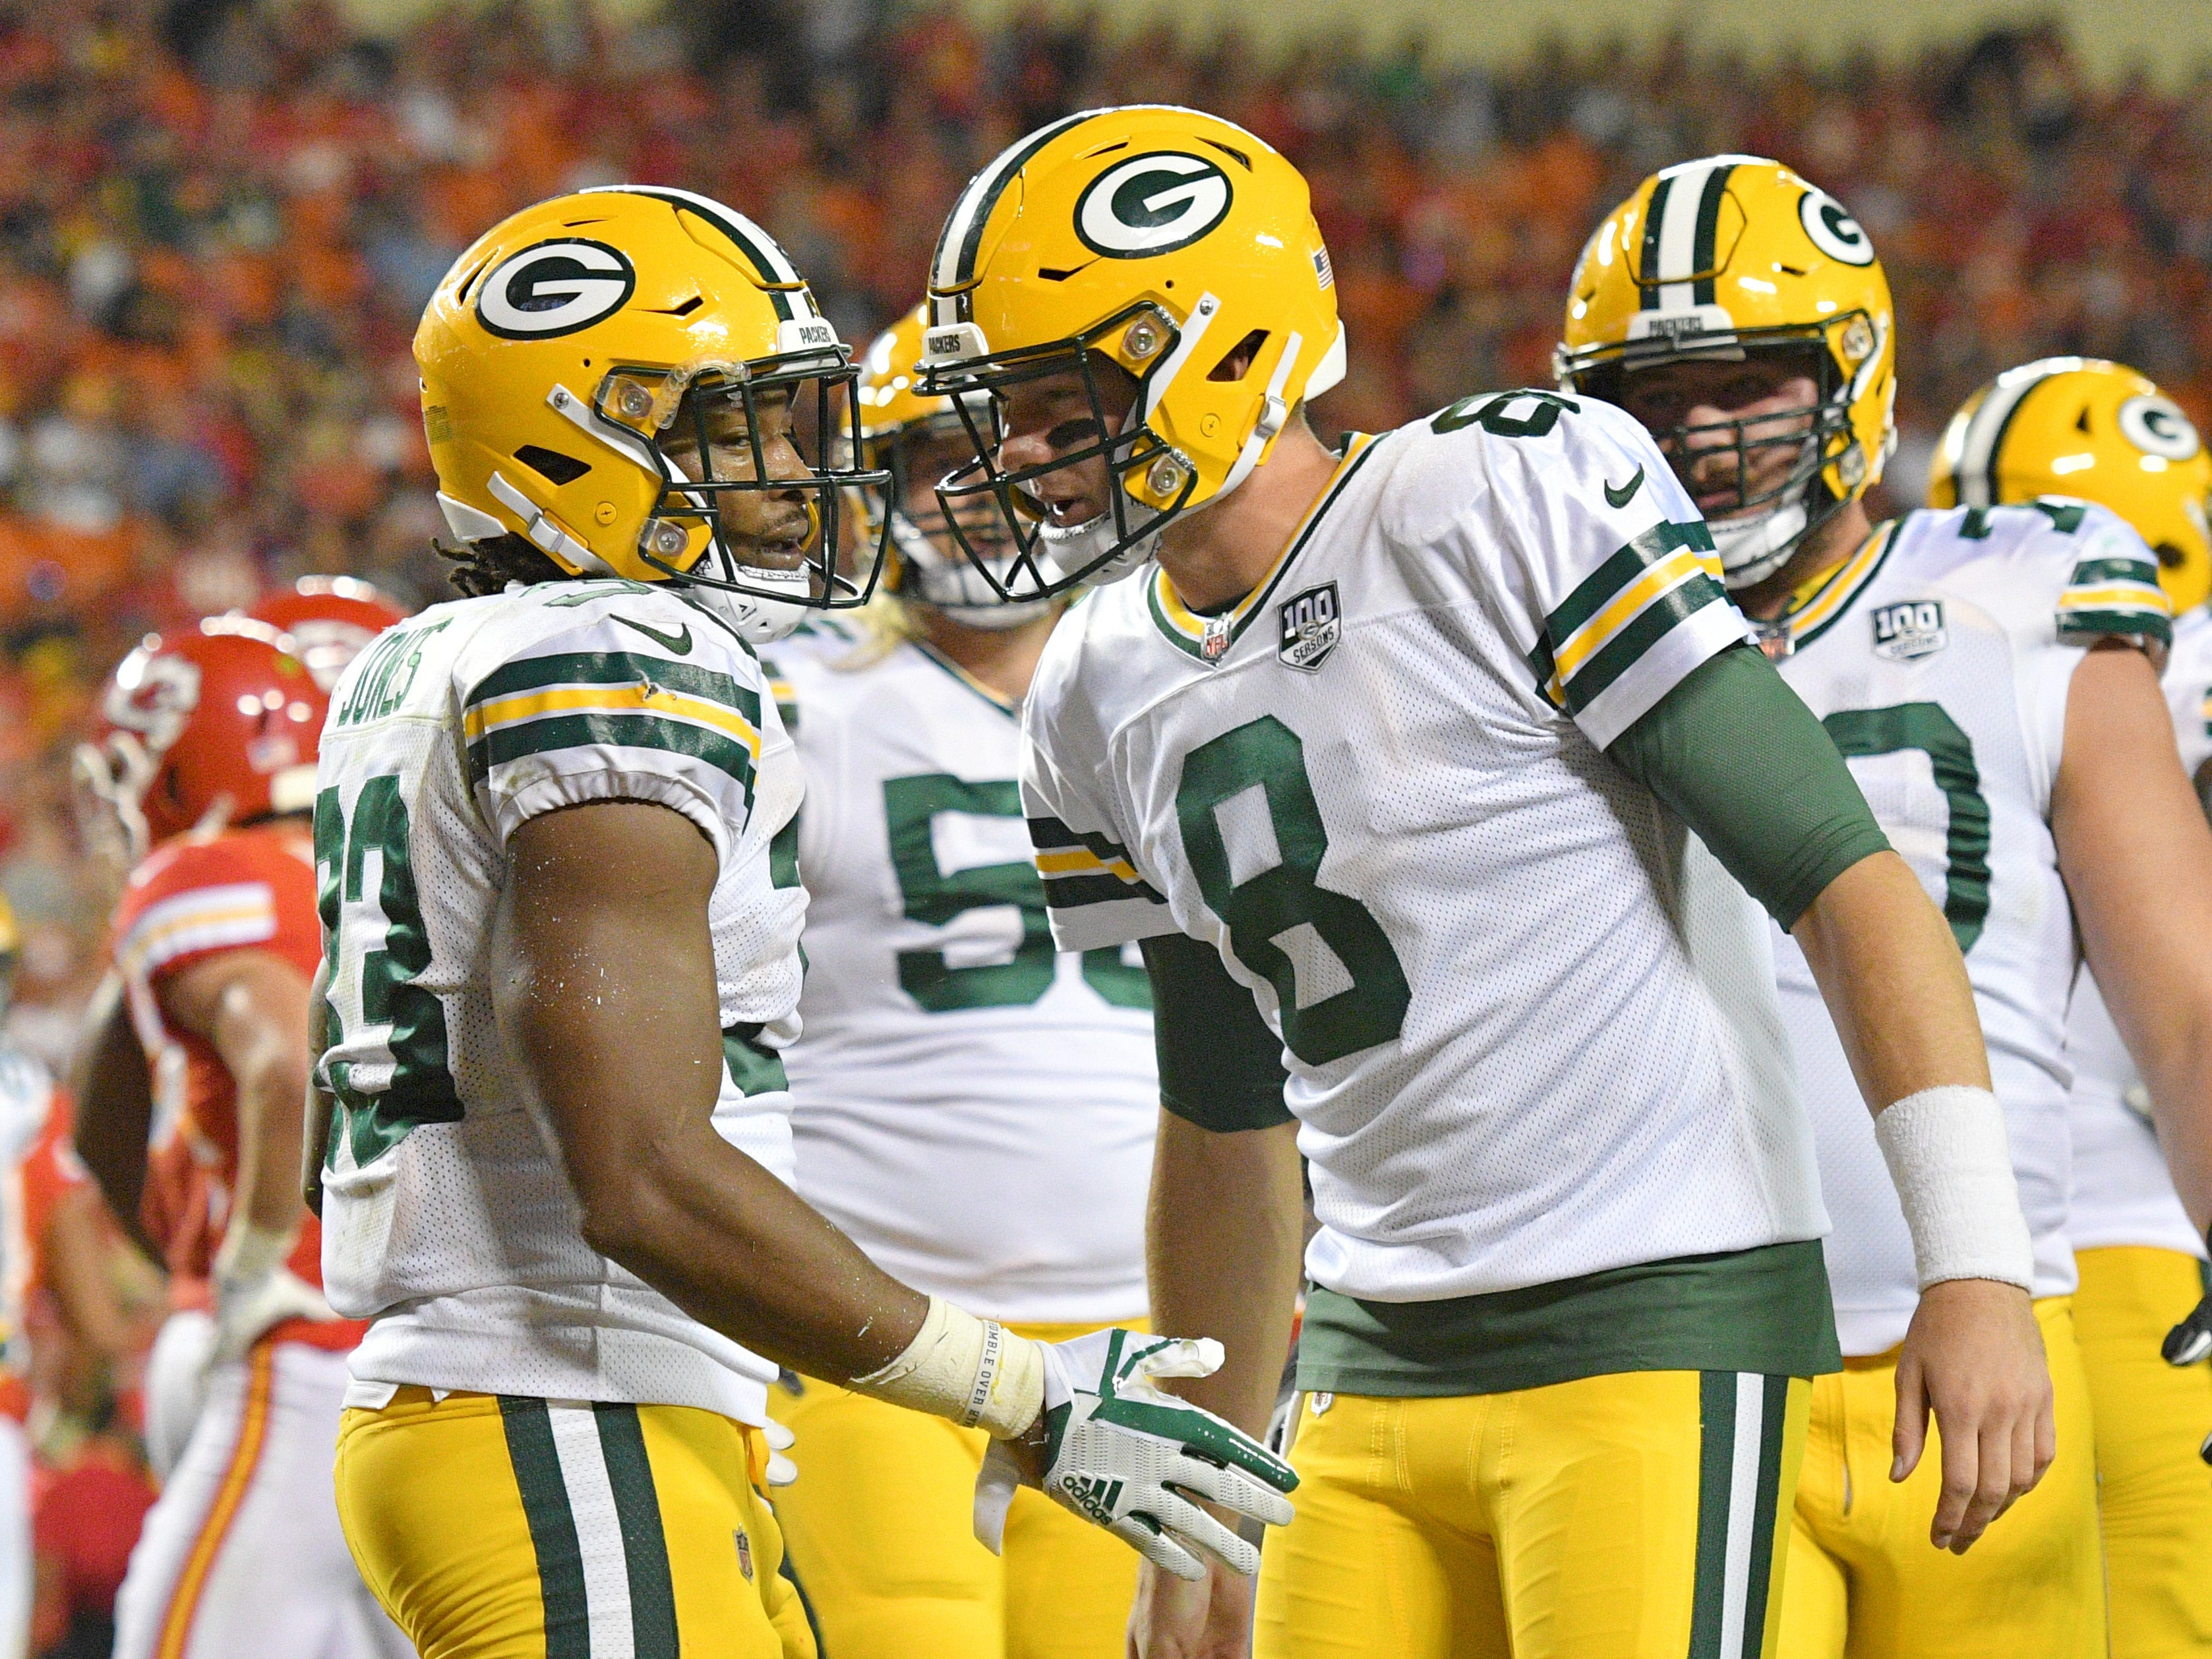 Aug 30, 2018; Kansas City, MO, USA; Green Bay Packers running back Aaron Jones (33) celebrates with quarterback Tim Boyle (8) after scoring during the first half against the Kansas City Chiefs at Arrowhead Stadium.